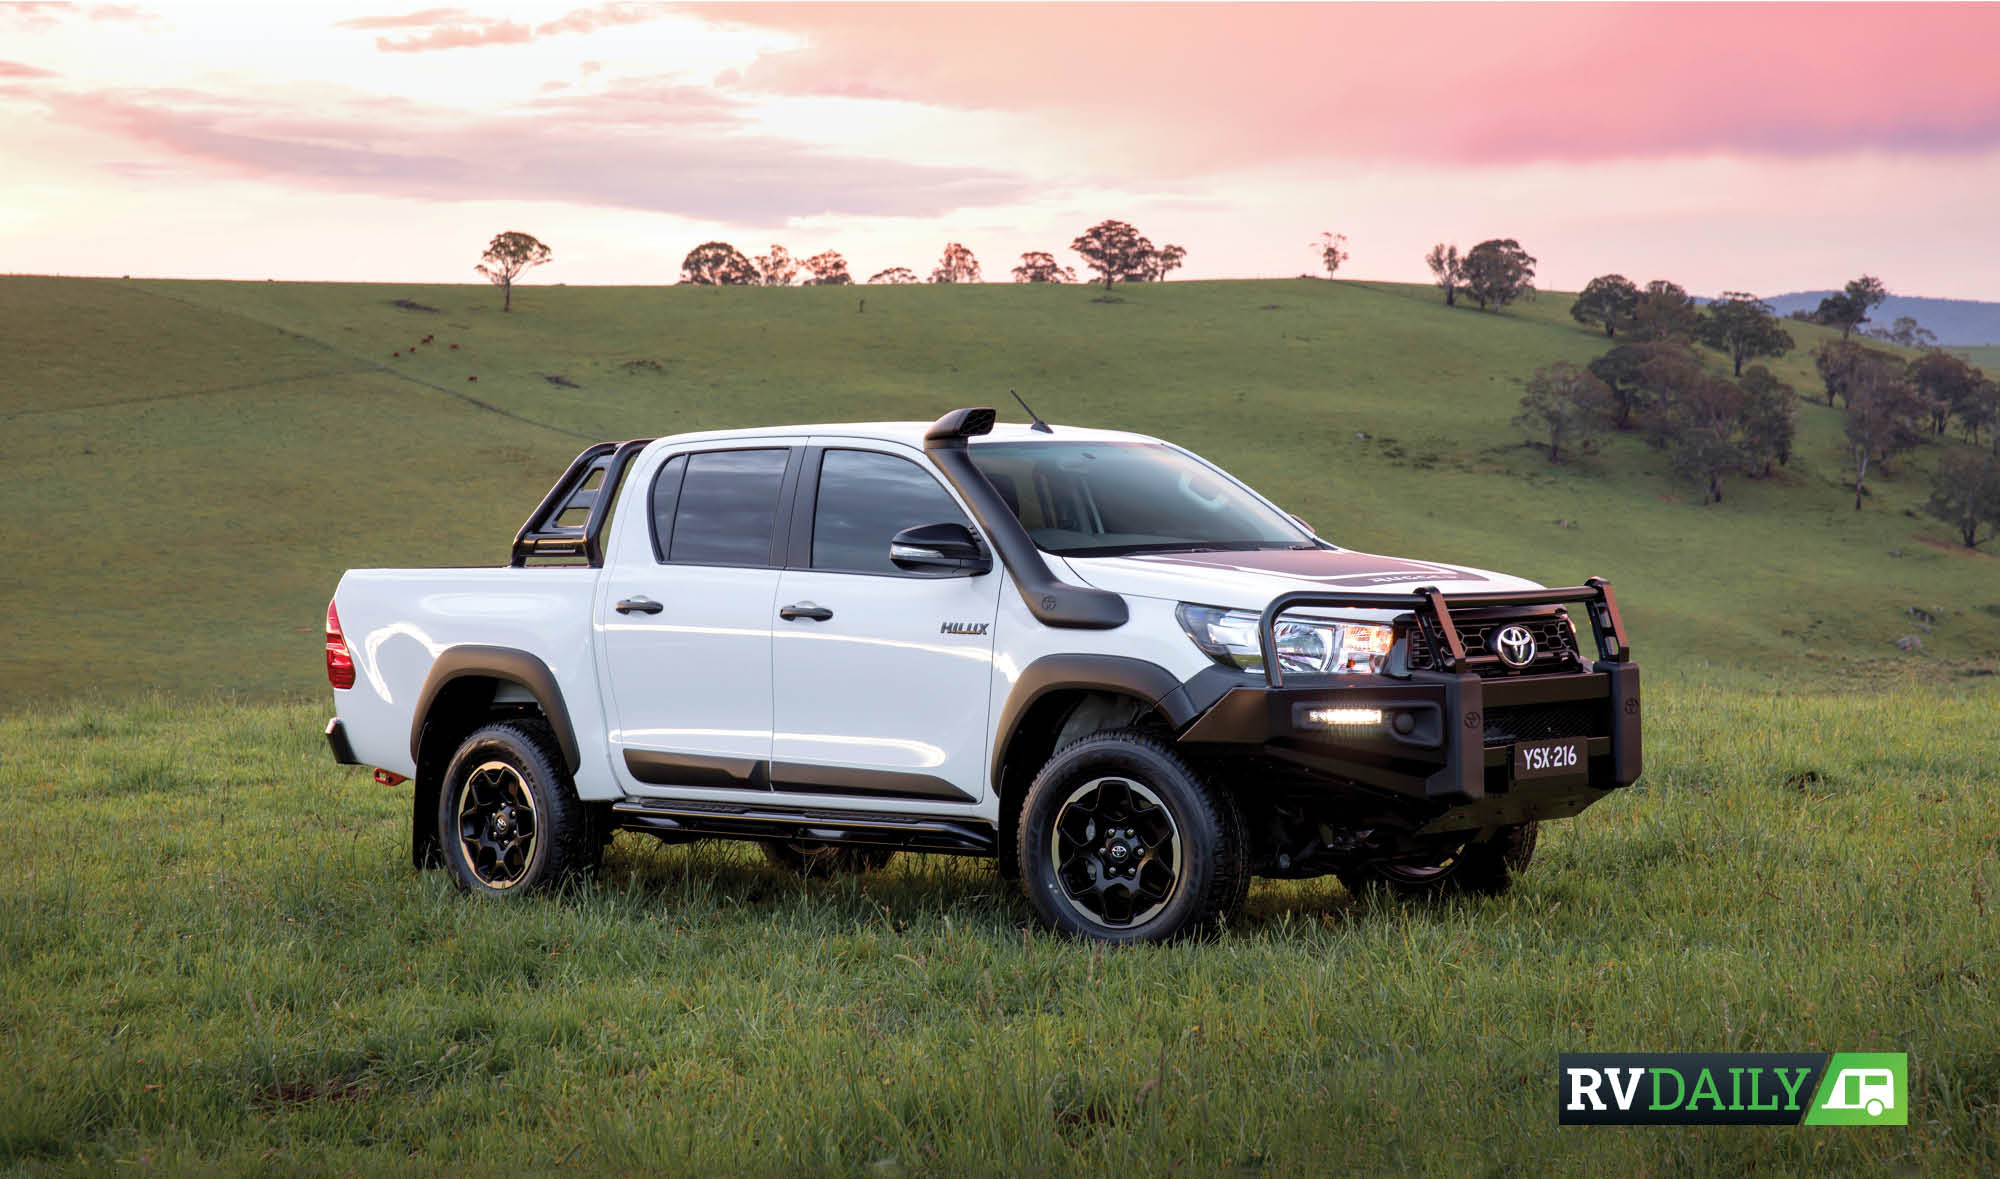 4X4 UTE SALES CONTINUE TO RISE